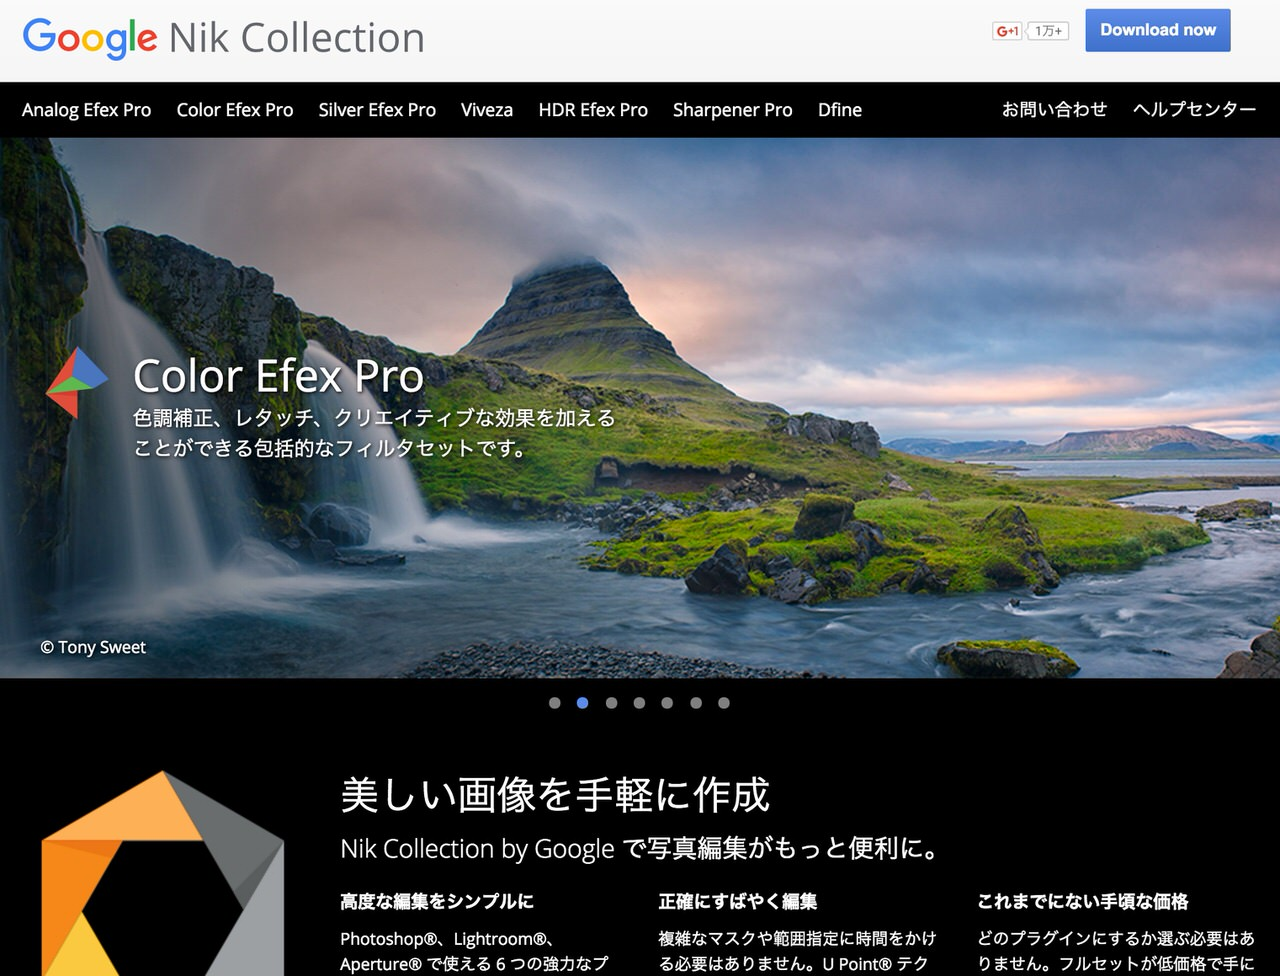 Google nik collection 1424